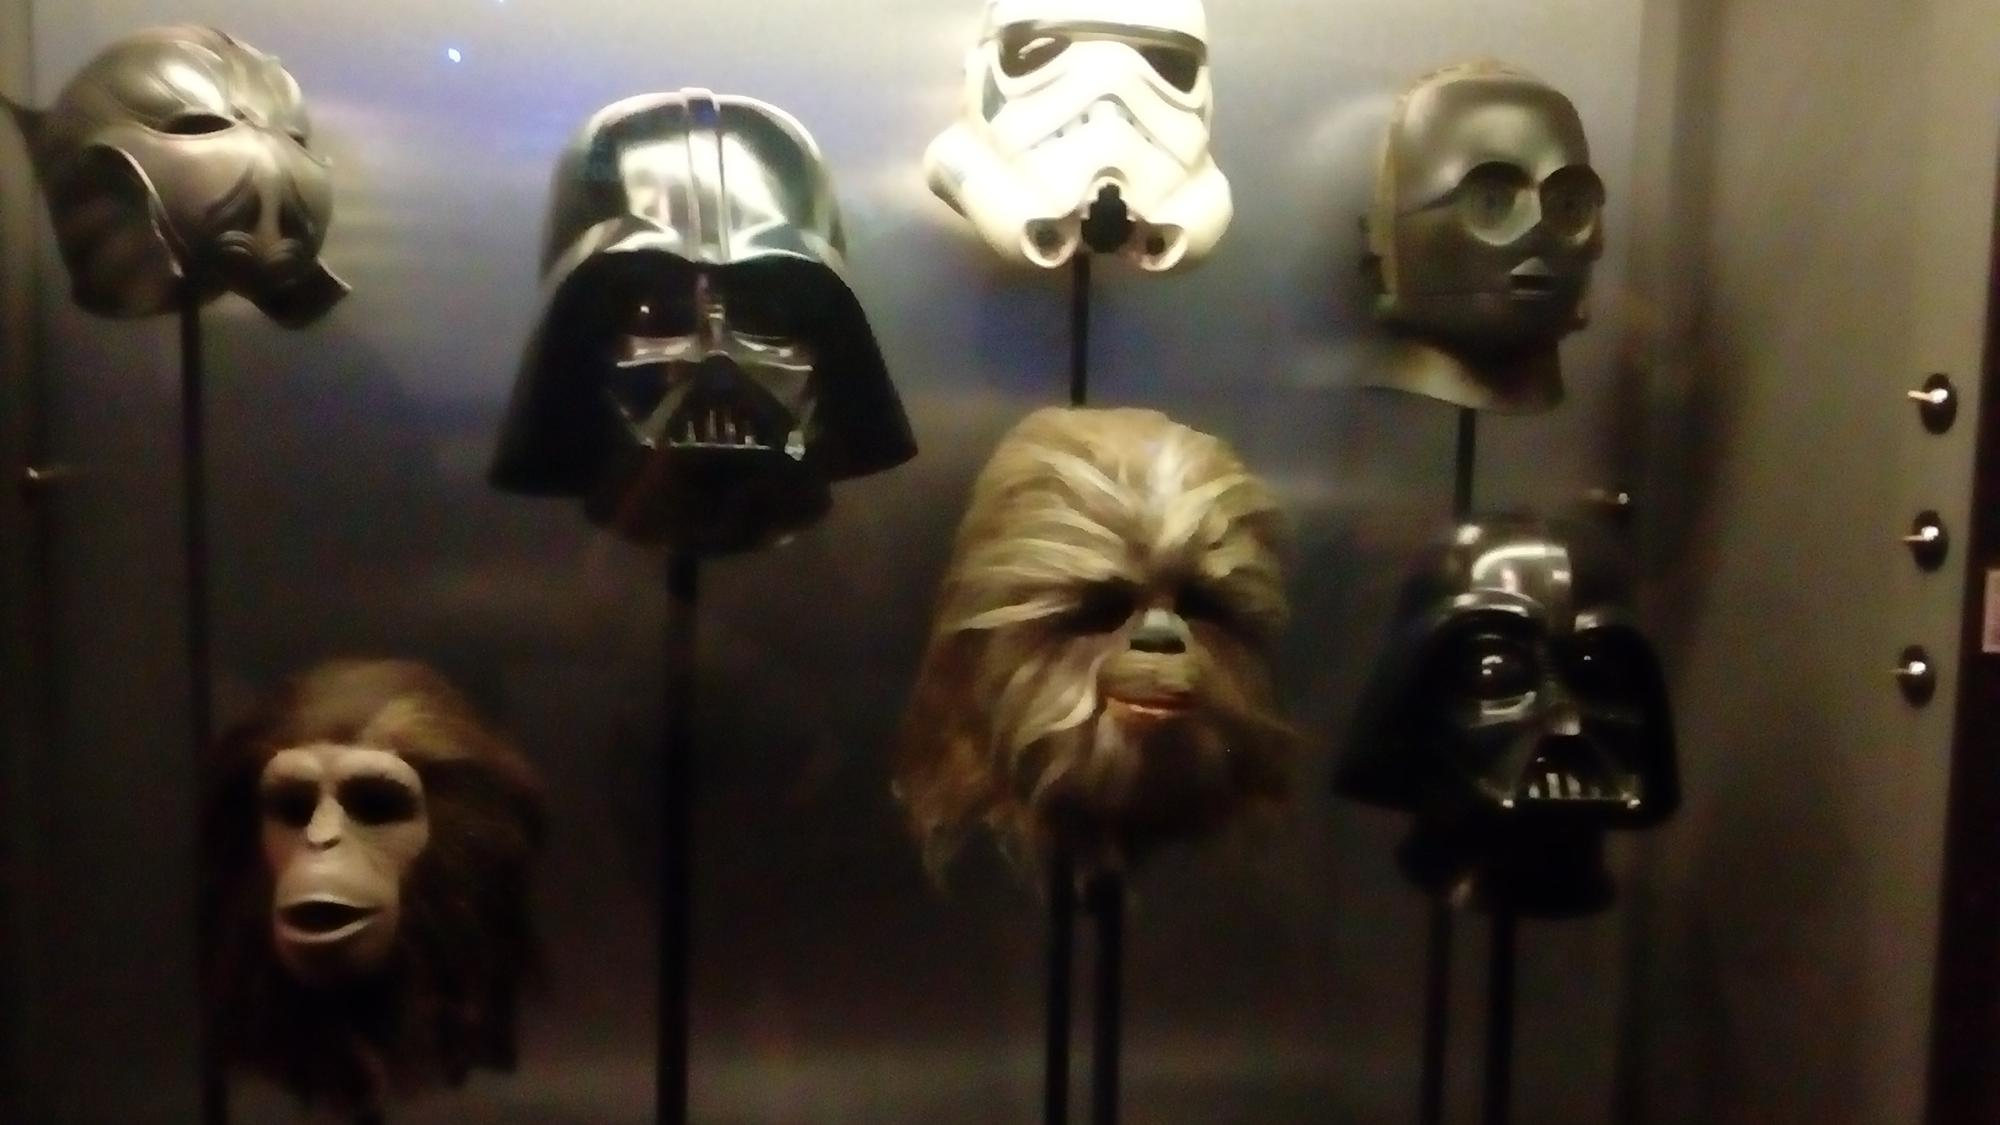 The darth vader mask is different in episode 5